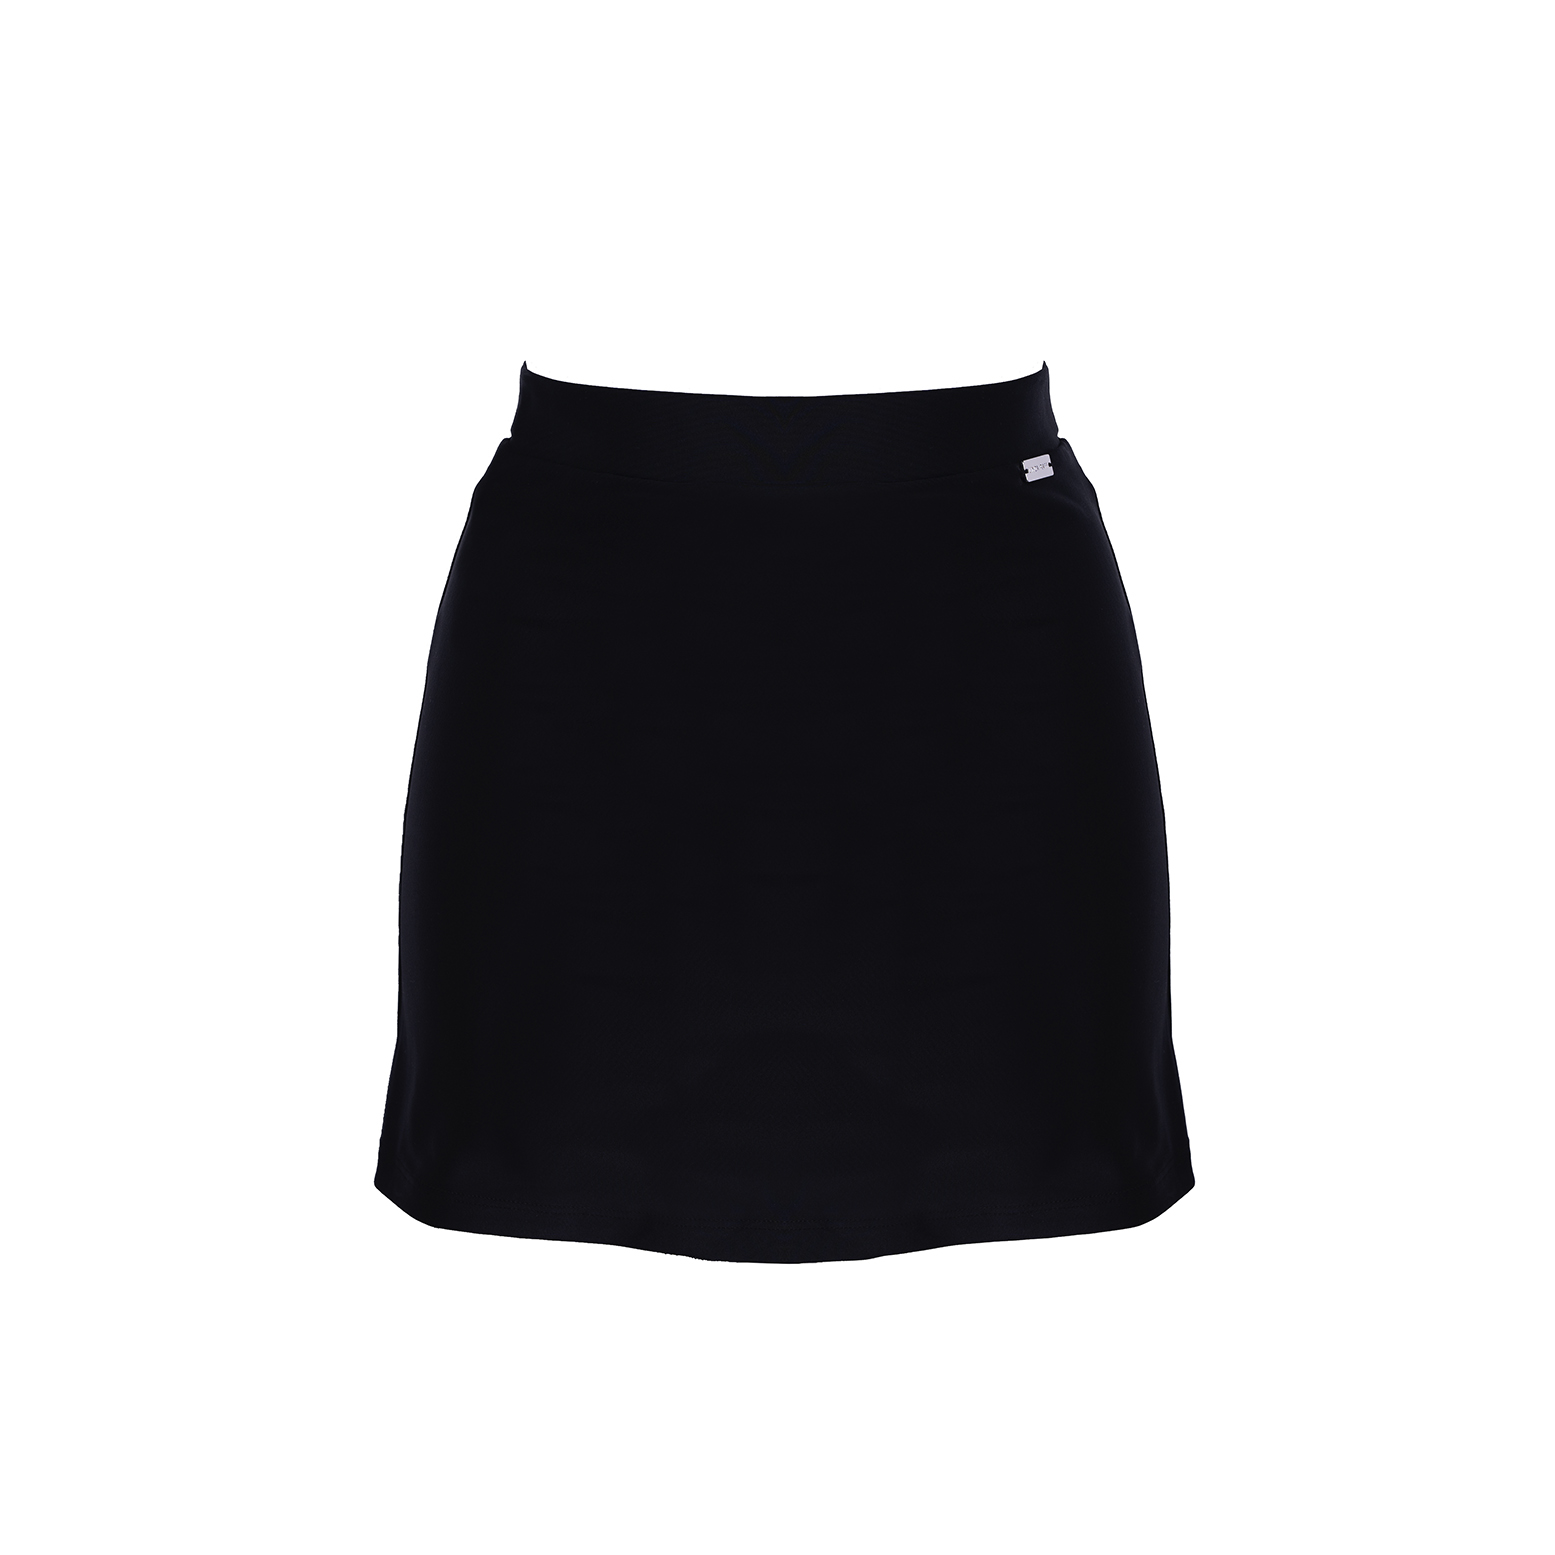 Linda Raff Collection -SKIRT ECO BLACK